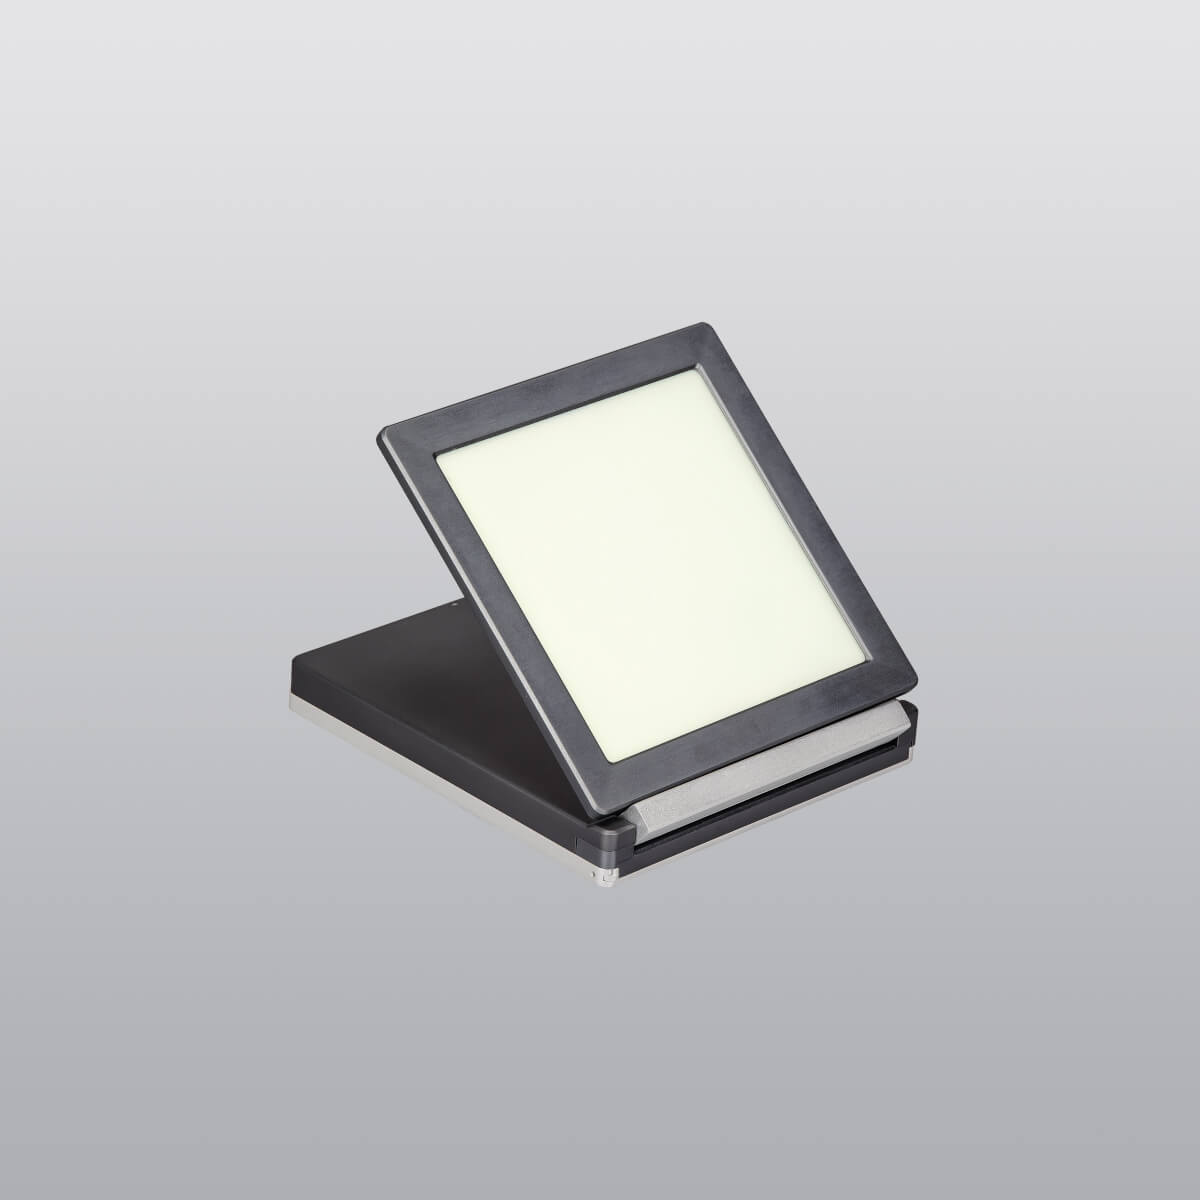 OLED luminaire SquareOne from Gamma Illumination